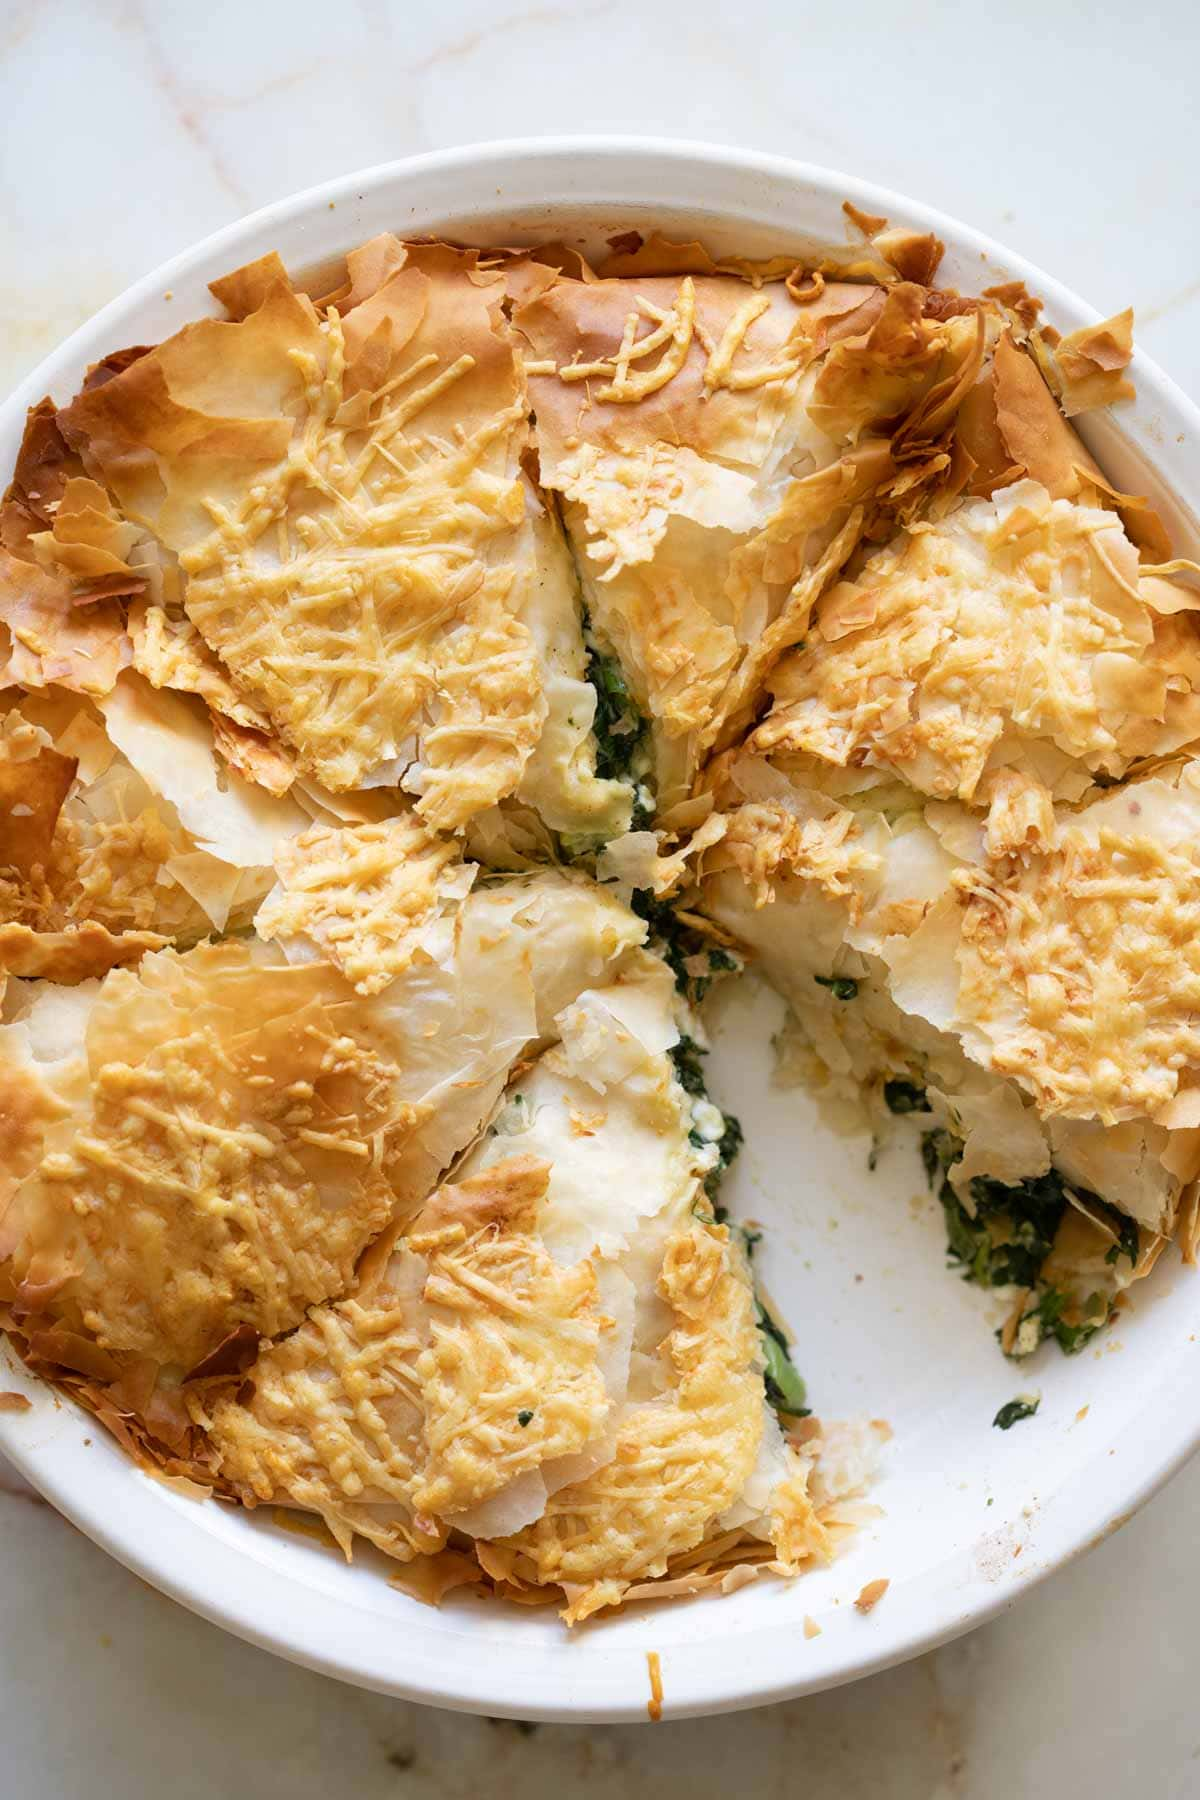 a piece cut out of the spanakopita pie